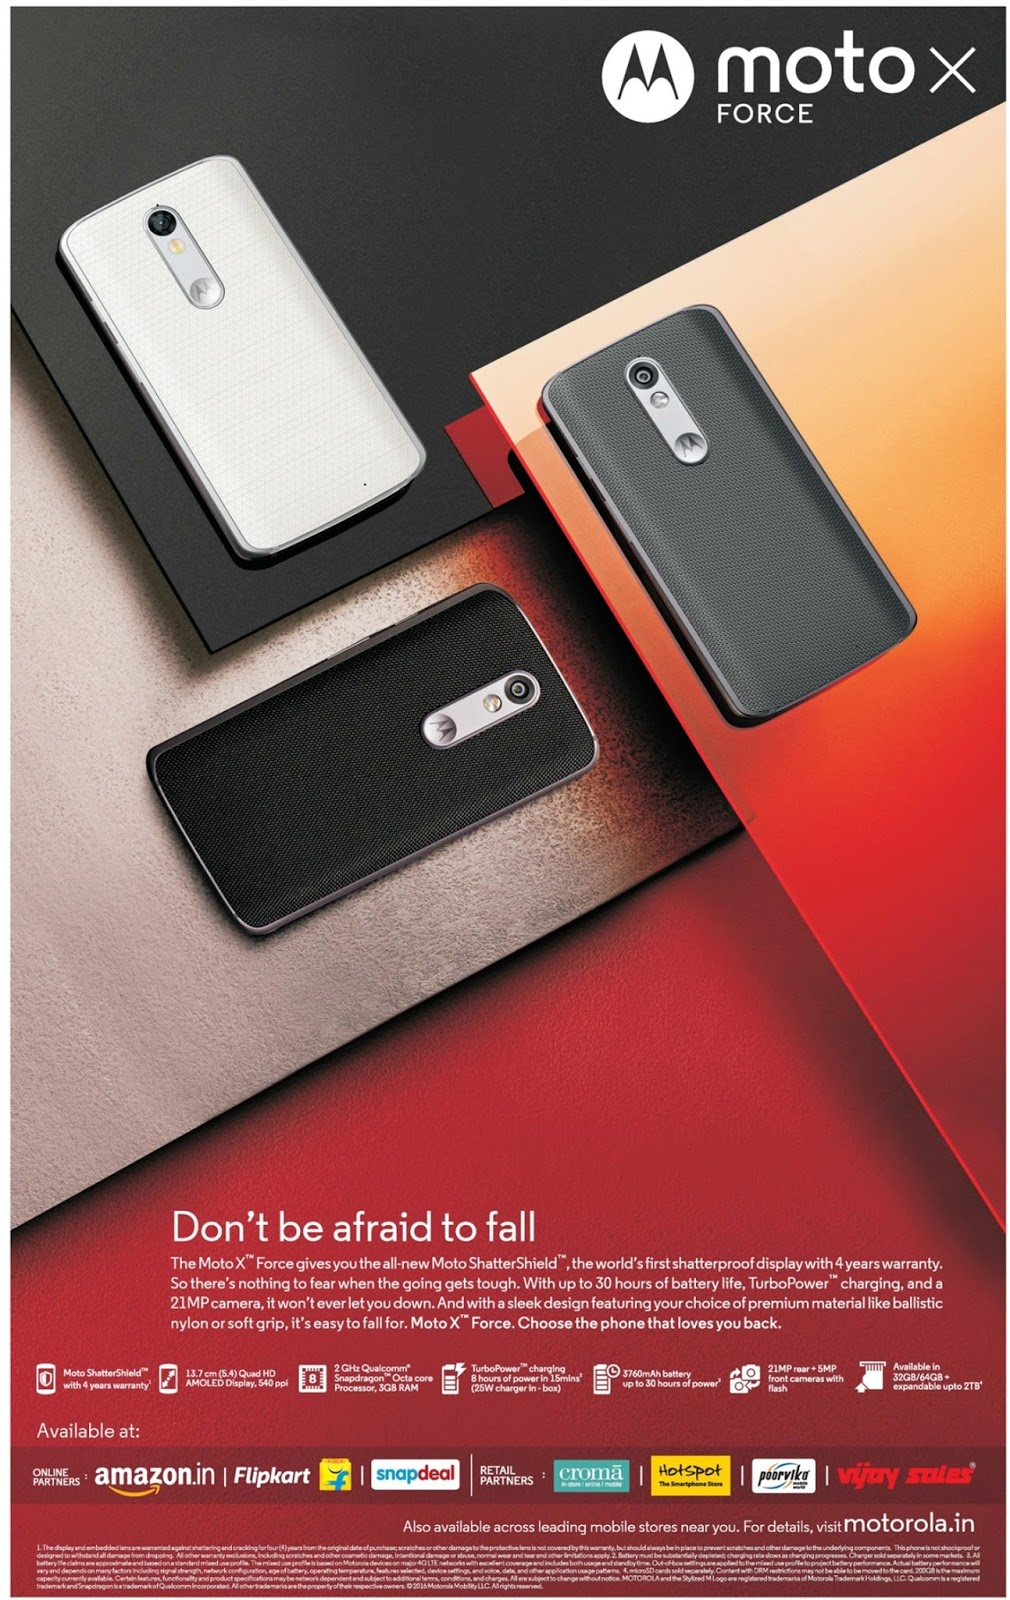 Moto x Force Guaranteed shatterproof | February 2016 discount offer